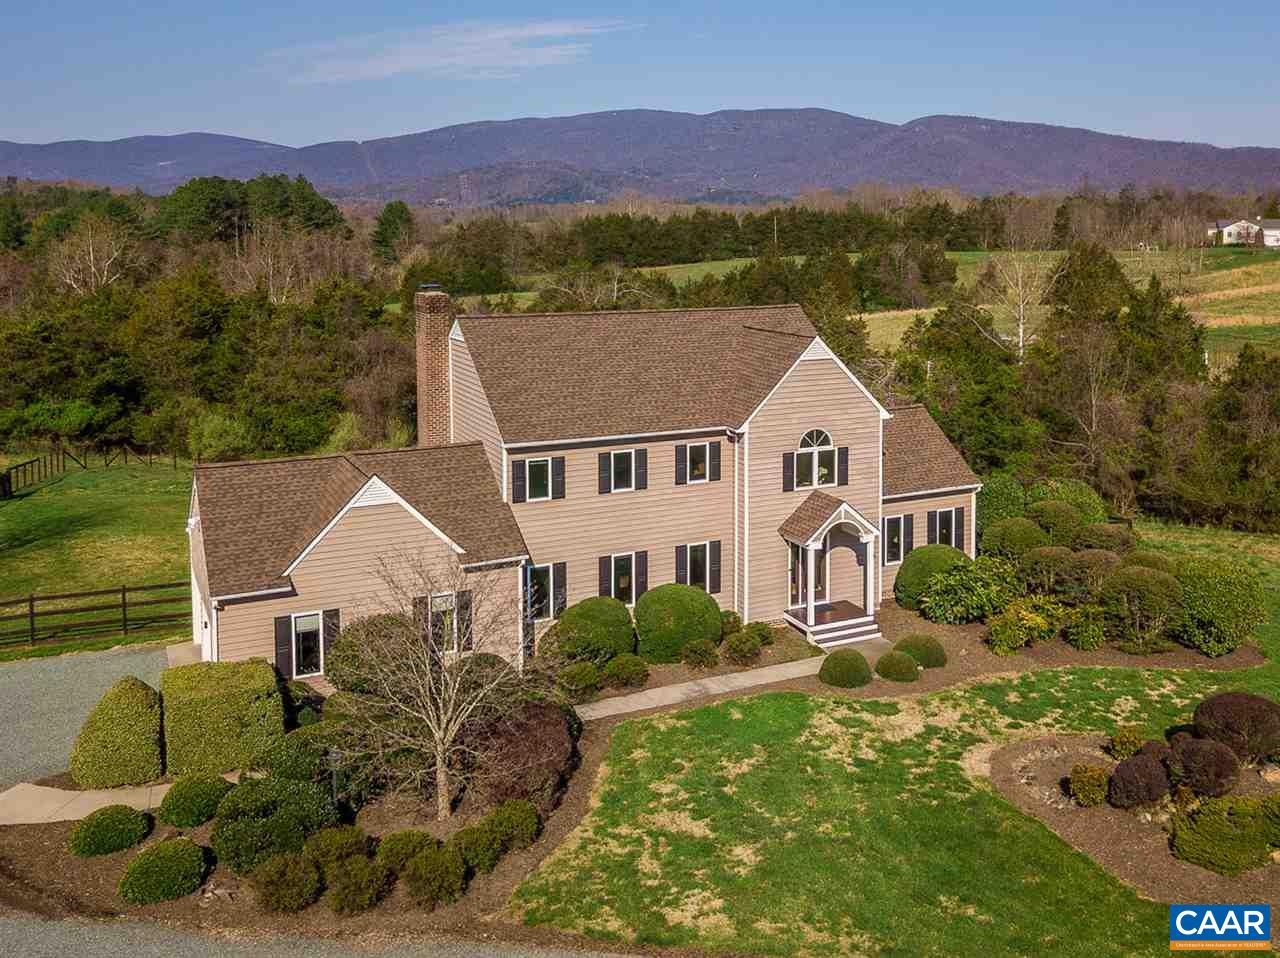 home for sale , MLS #599930, 1608 Browns Gap Tpke